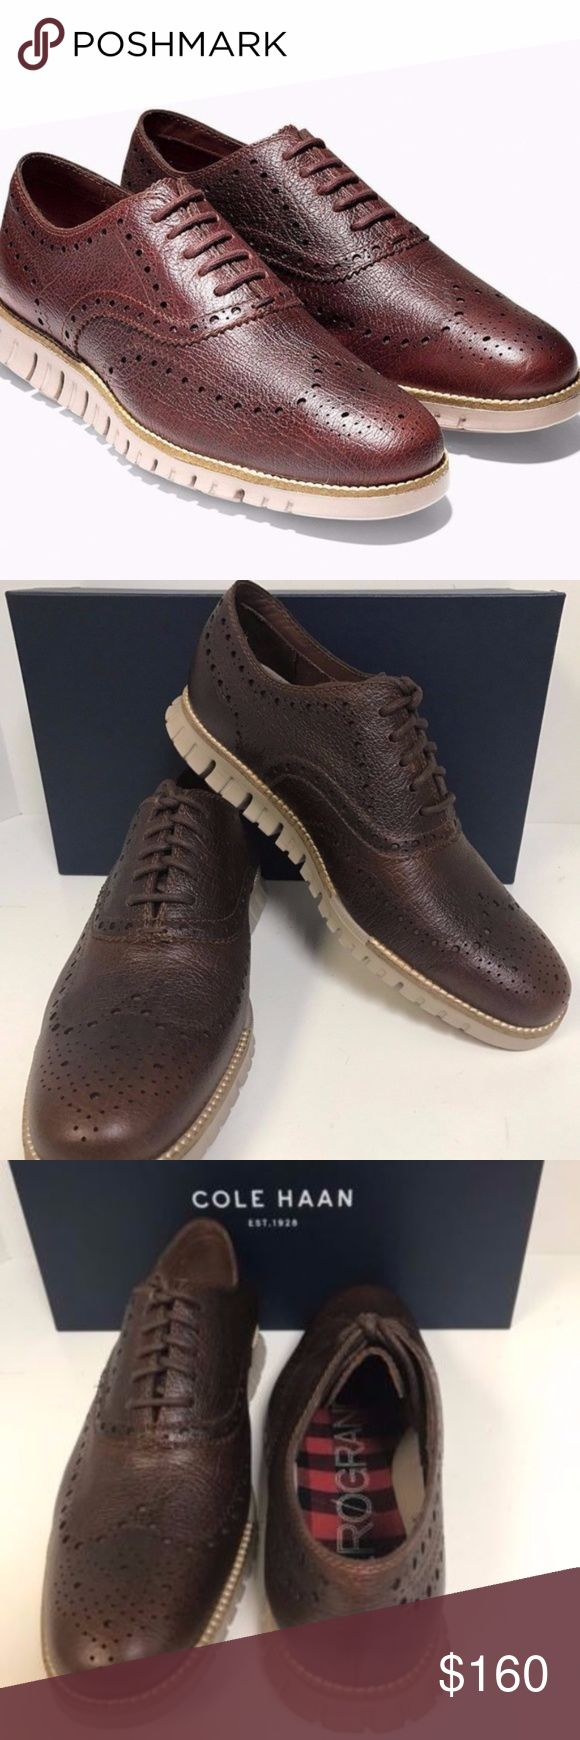 Cole Haan Zerogrand Wing Oxfords (Sz 13 wide) *This is a 13 men's *Wide shoe. For men that wear a size 13 but have a wide foot.  -Brand New in Box -100% Authentic -Excellent Condition -Sz 13 Men (Wide)* -Grand Canyon/Cobblestone color way -Ships doubled boxed -Secured Packaging -Same day/Next day shipping provided Cole Haan Shoes Oxfords & Derbys